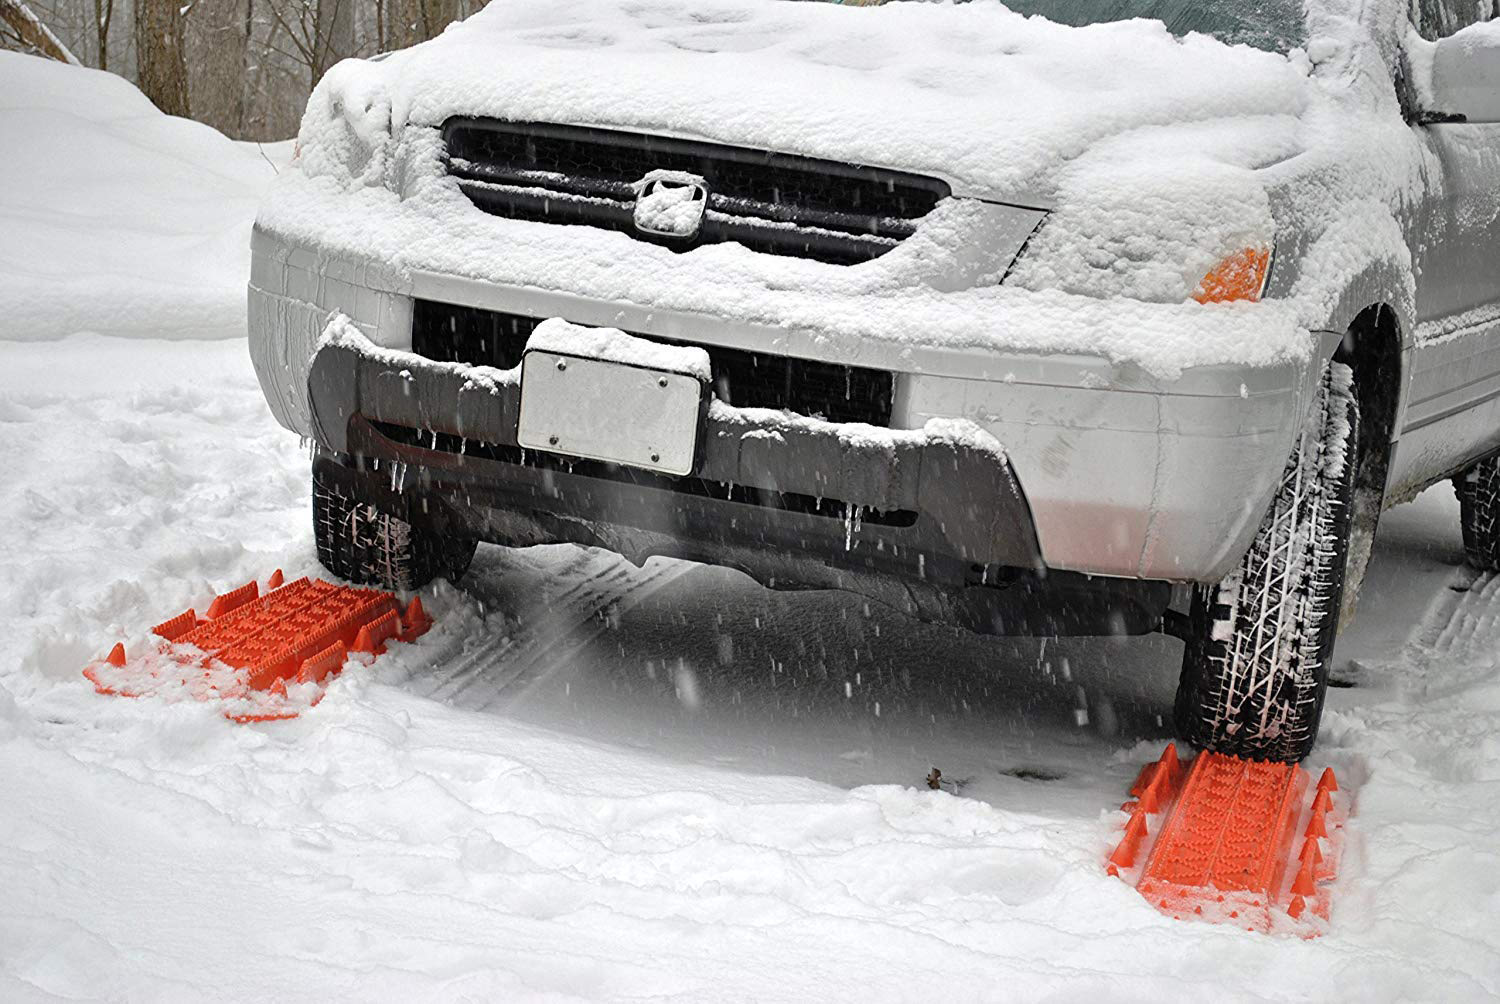 Maxsa Escaper Buddy Vehicle Traction Mats For Snow Ice Sand And Mud